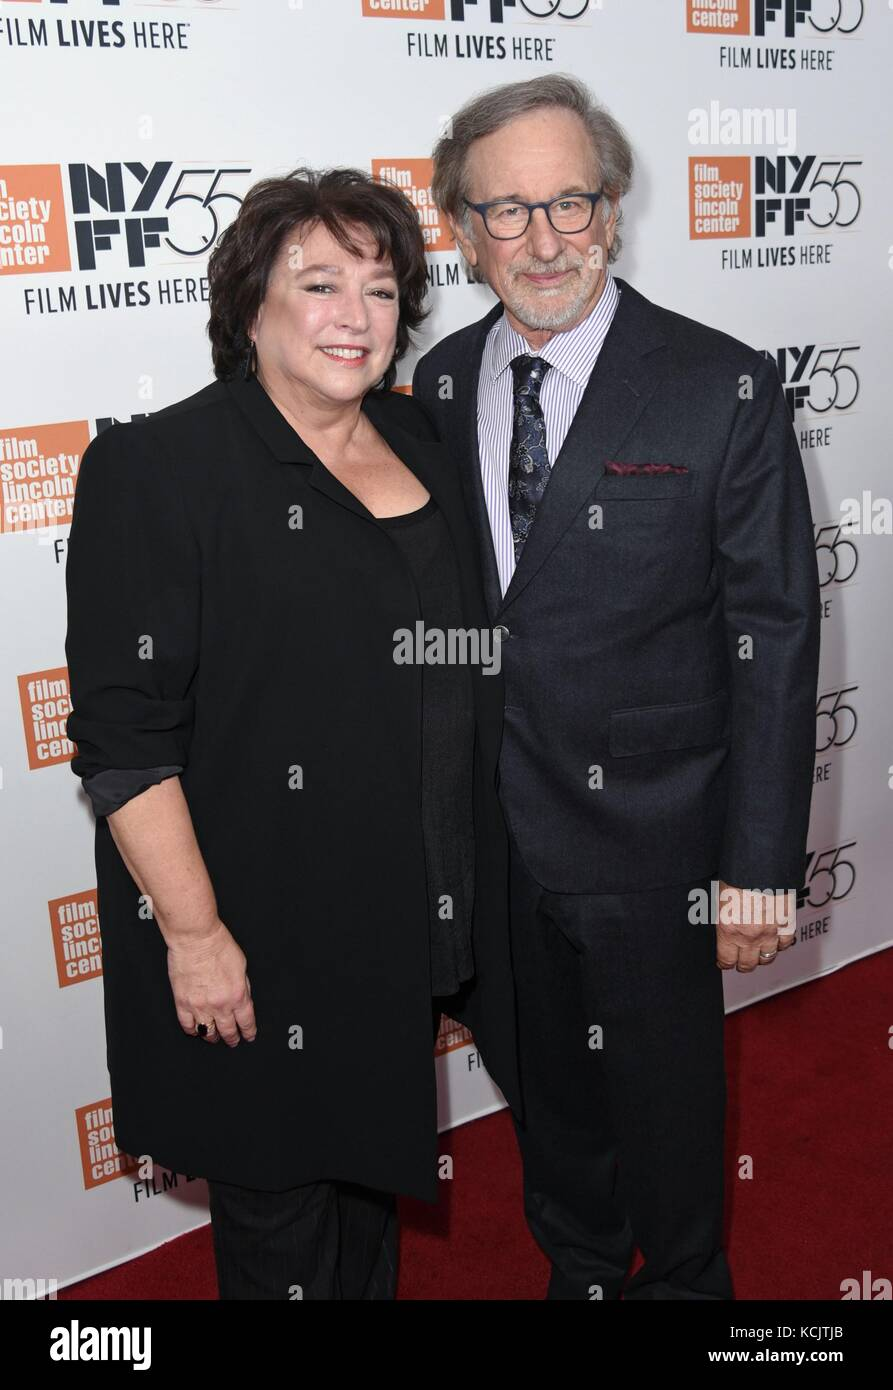 New York, NY, USA. 5th Oct, 2017. Susan Lacy, Steven Spielberg at arrivals for SPIELBERG Premiere at the 55th Annual Stock Photo